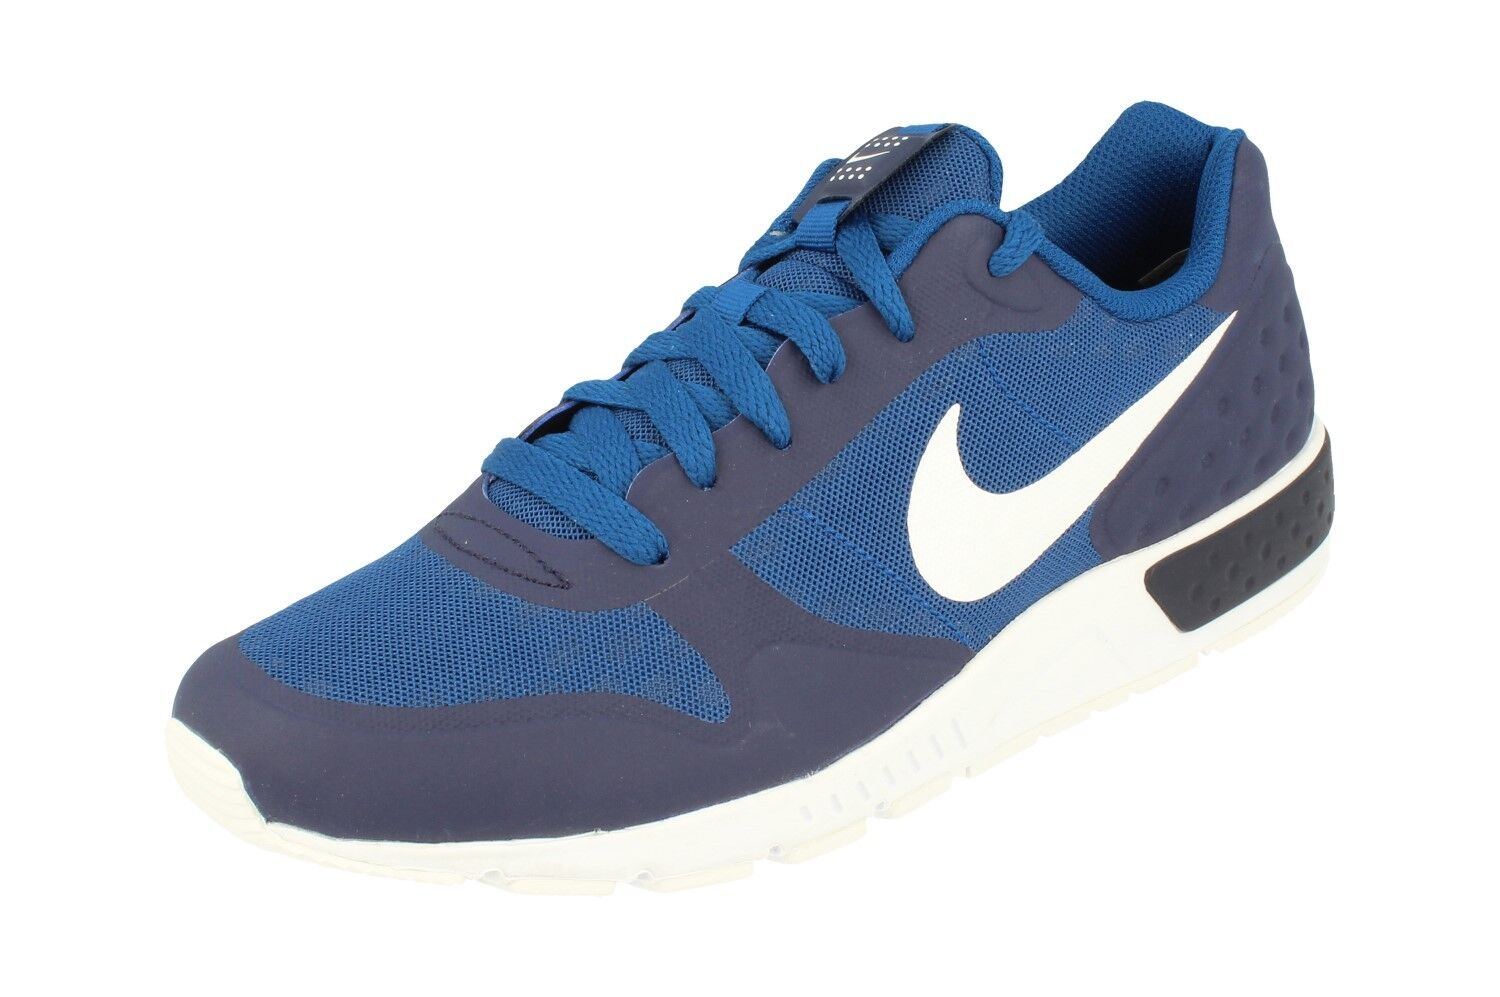 Nike Nightgazer Lw Se Mens Running Trainers 902818 Sneakers shoes 402